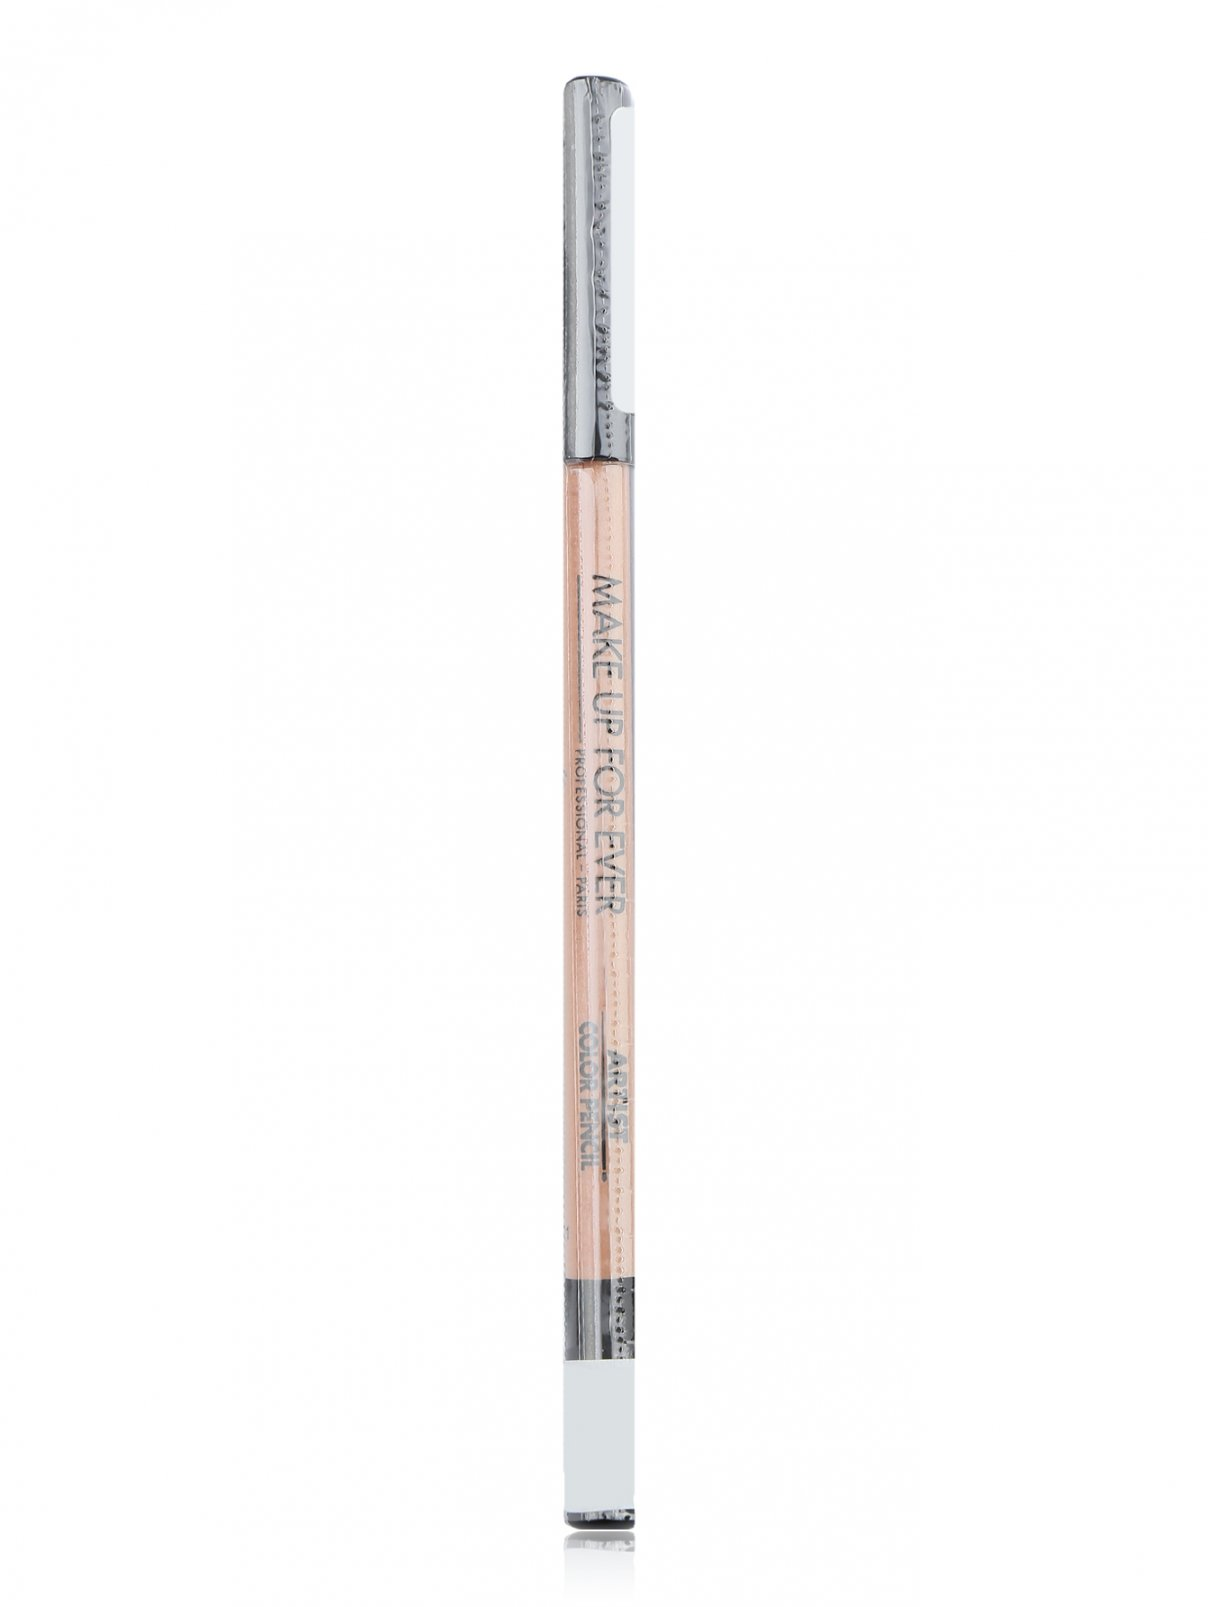 Карандаш для макияжа 1,41 г 100 Artist Color Pencil MAKE UP FOR EVER  –  Общий вид